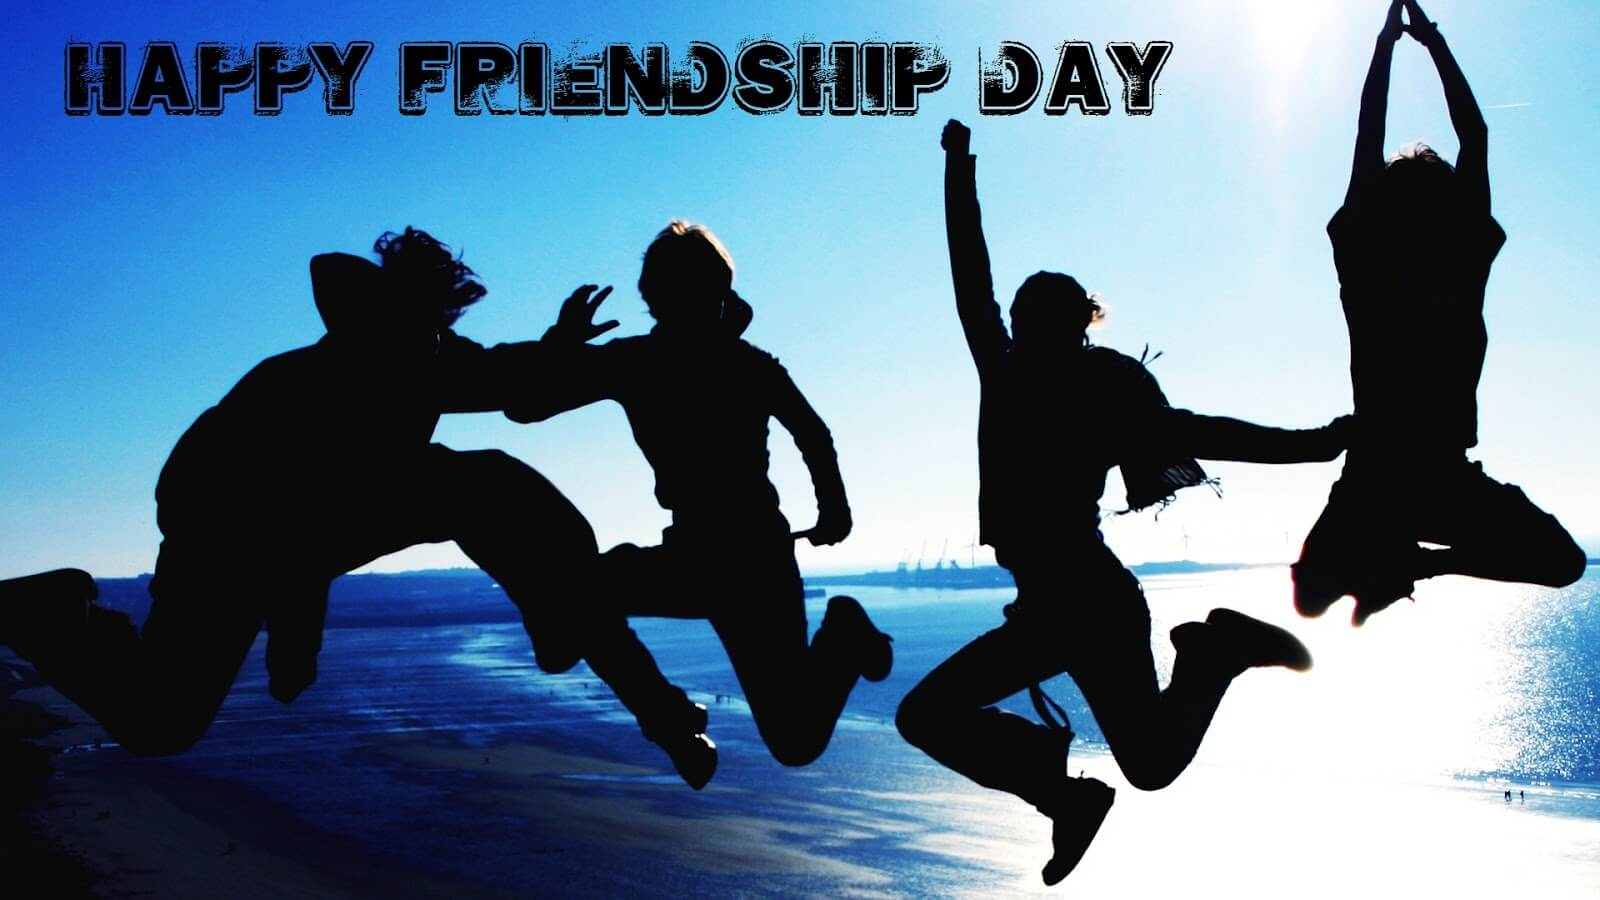 happy friendship day jumping with joy image